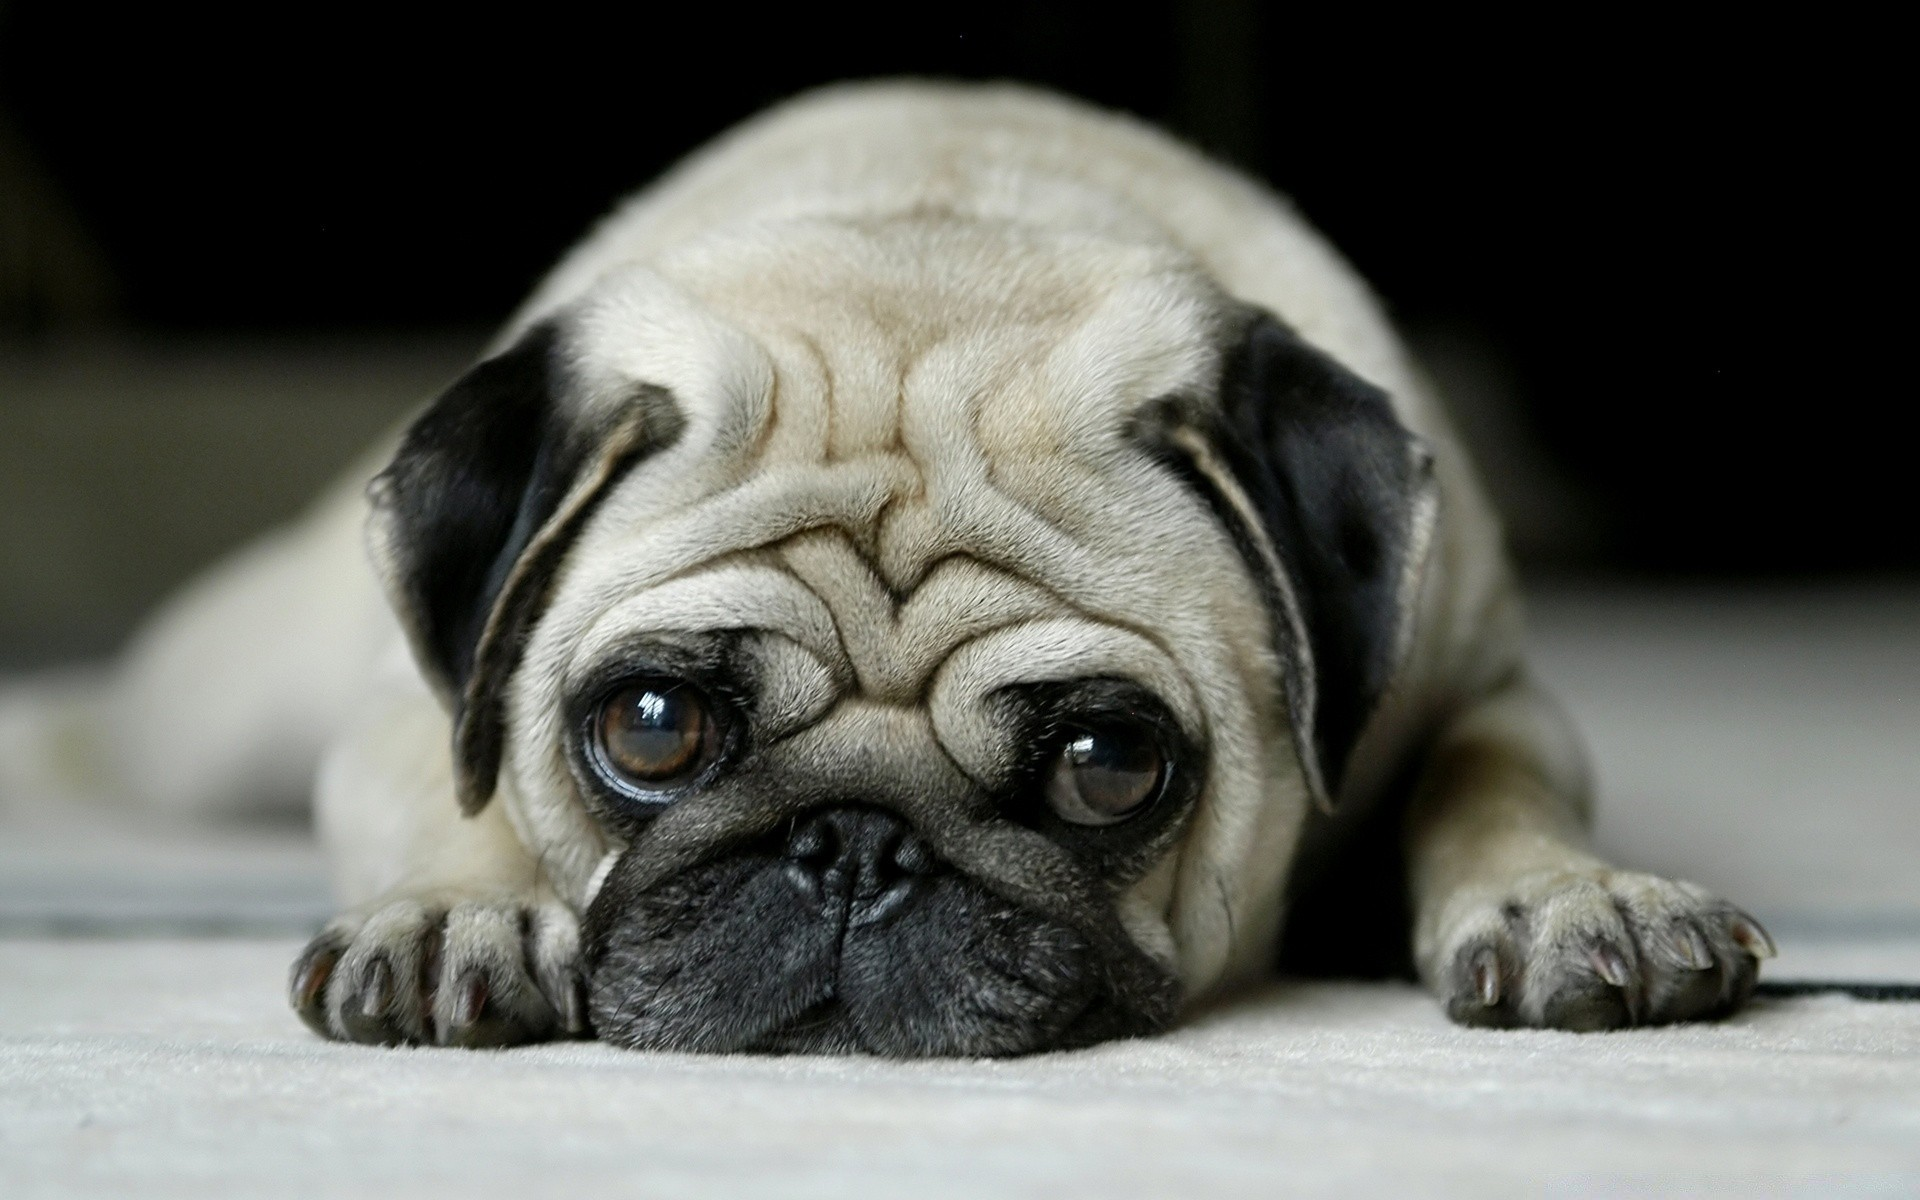 Pug IPhone Wallpapers For Free